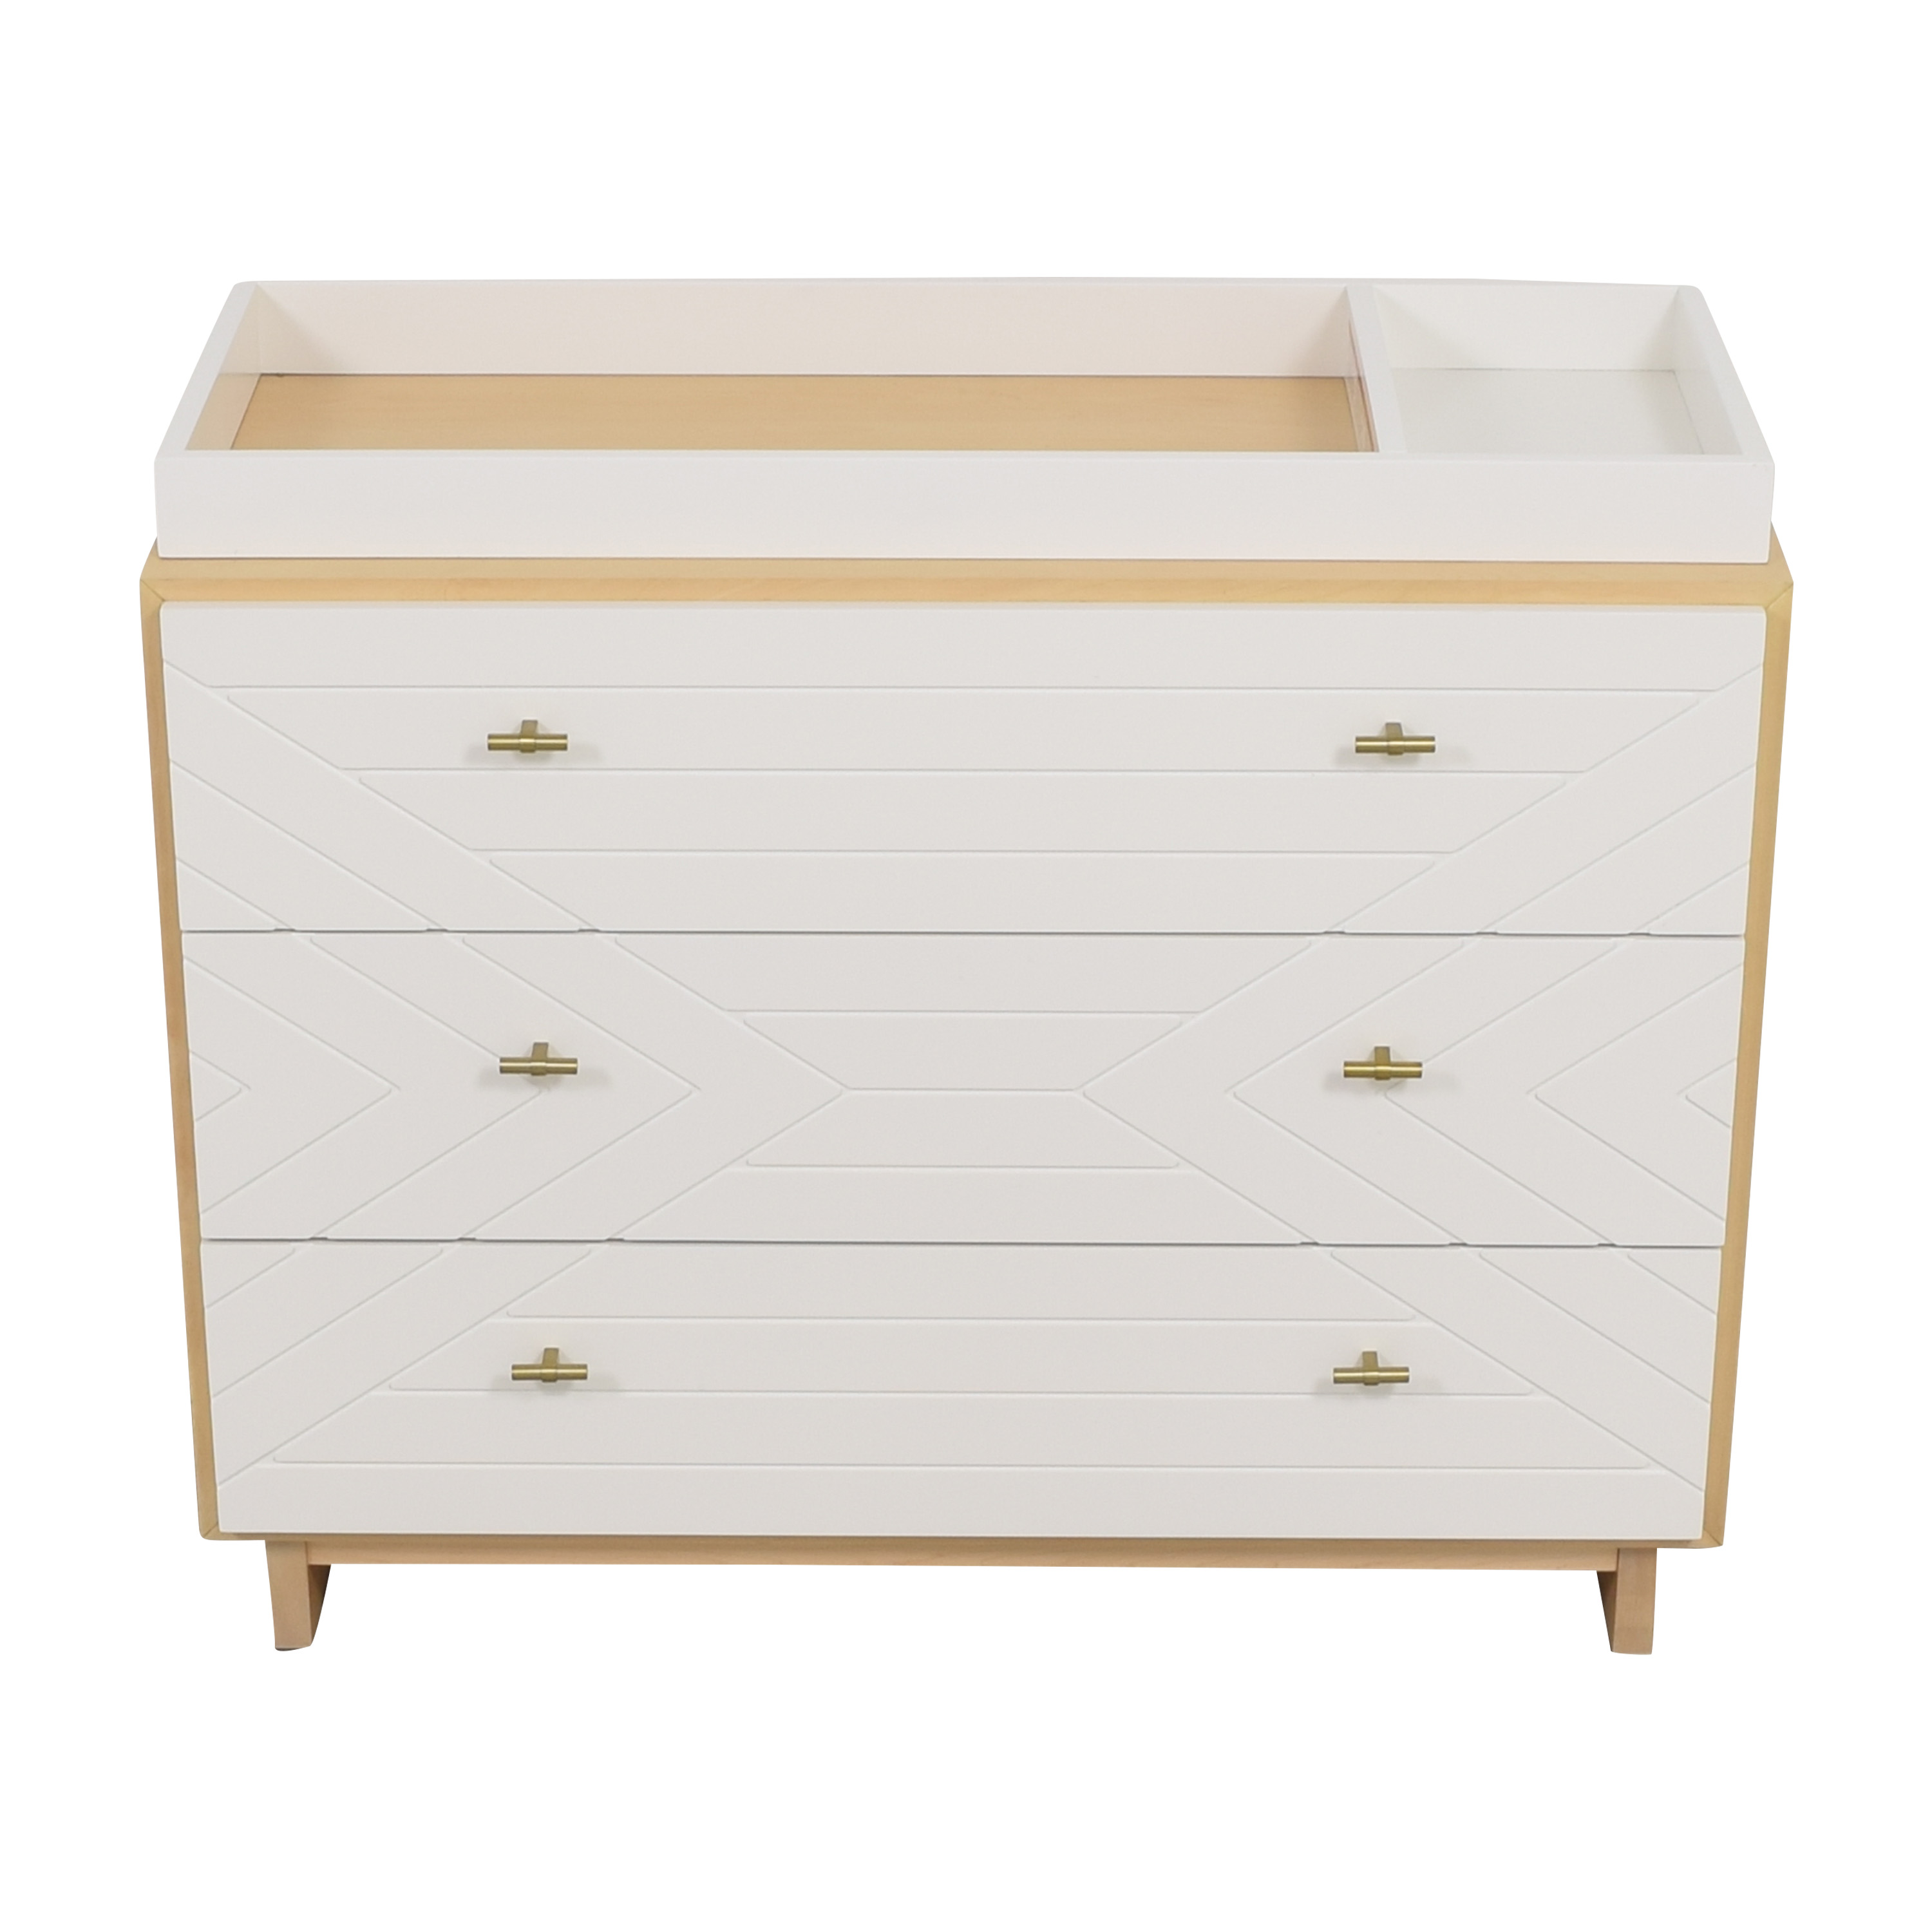 West Elm West Elm Cora Three Drawer Changing Table nyc